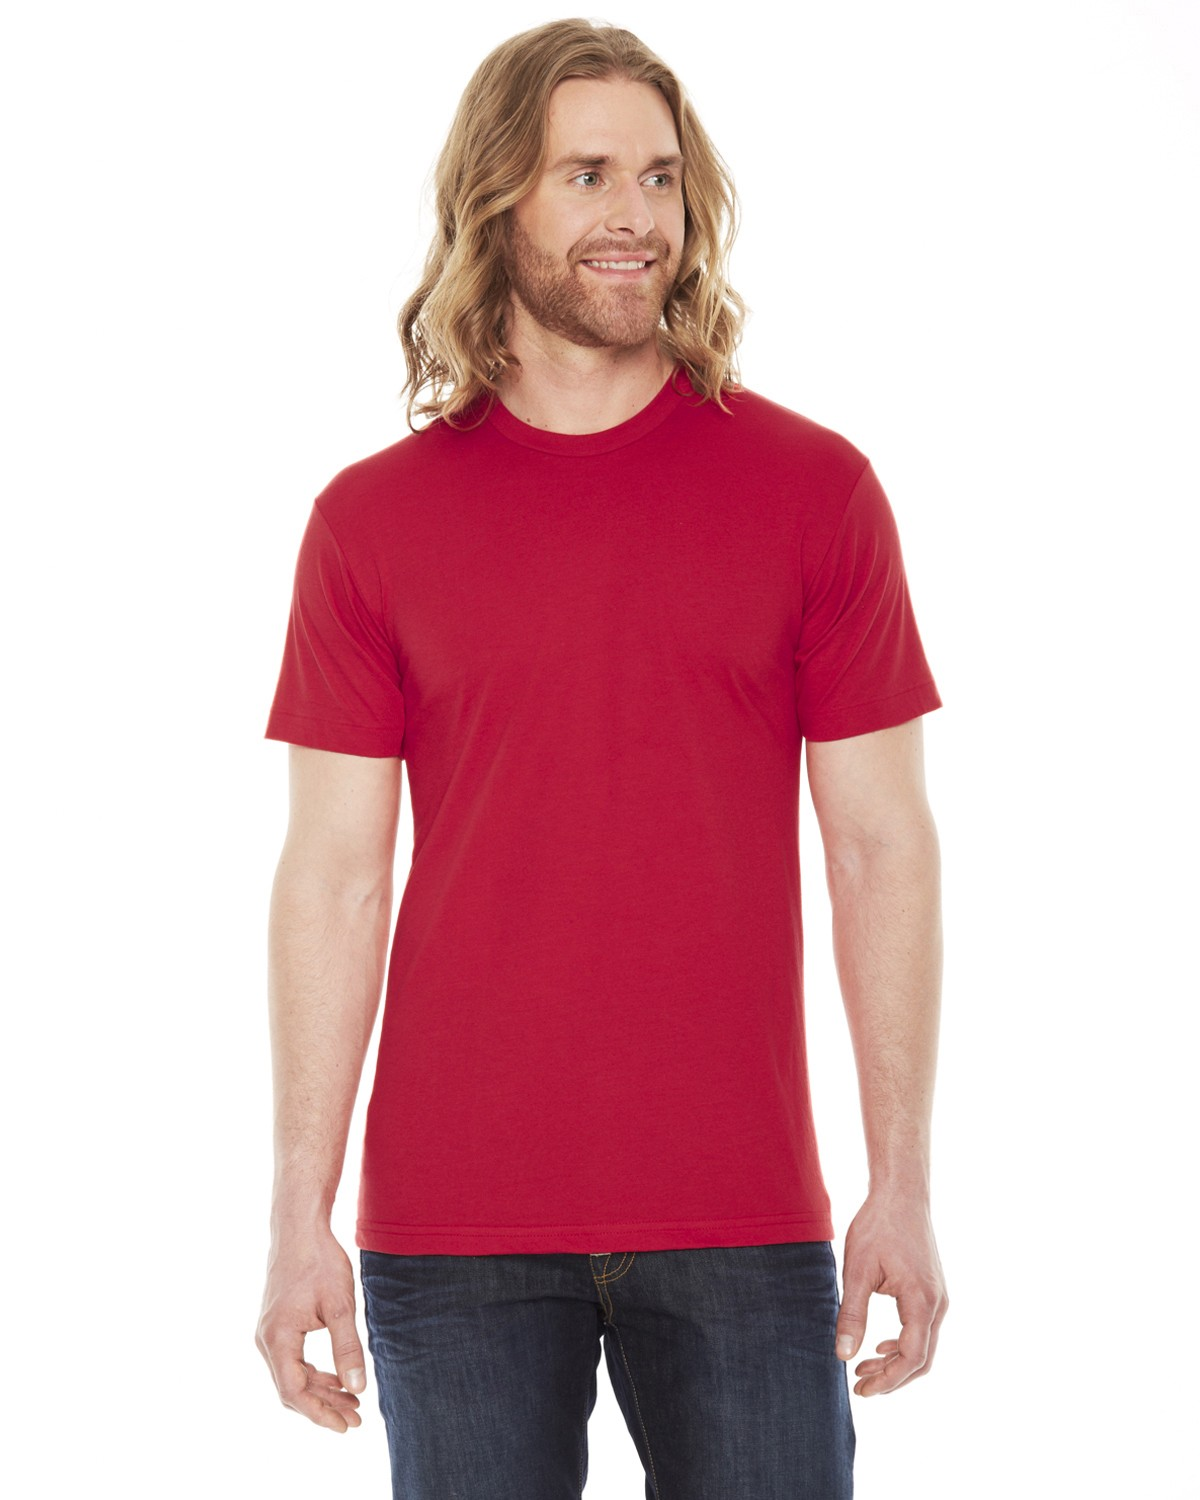 BB401W American Apparel RED